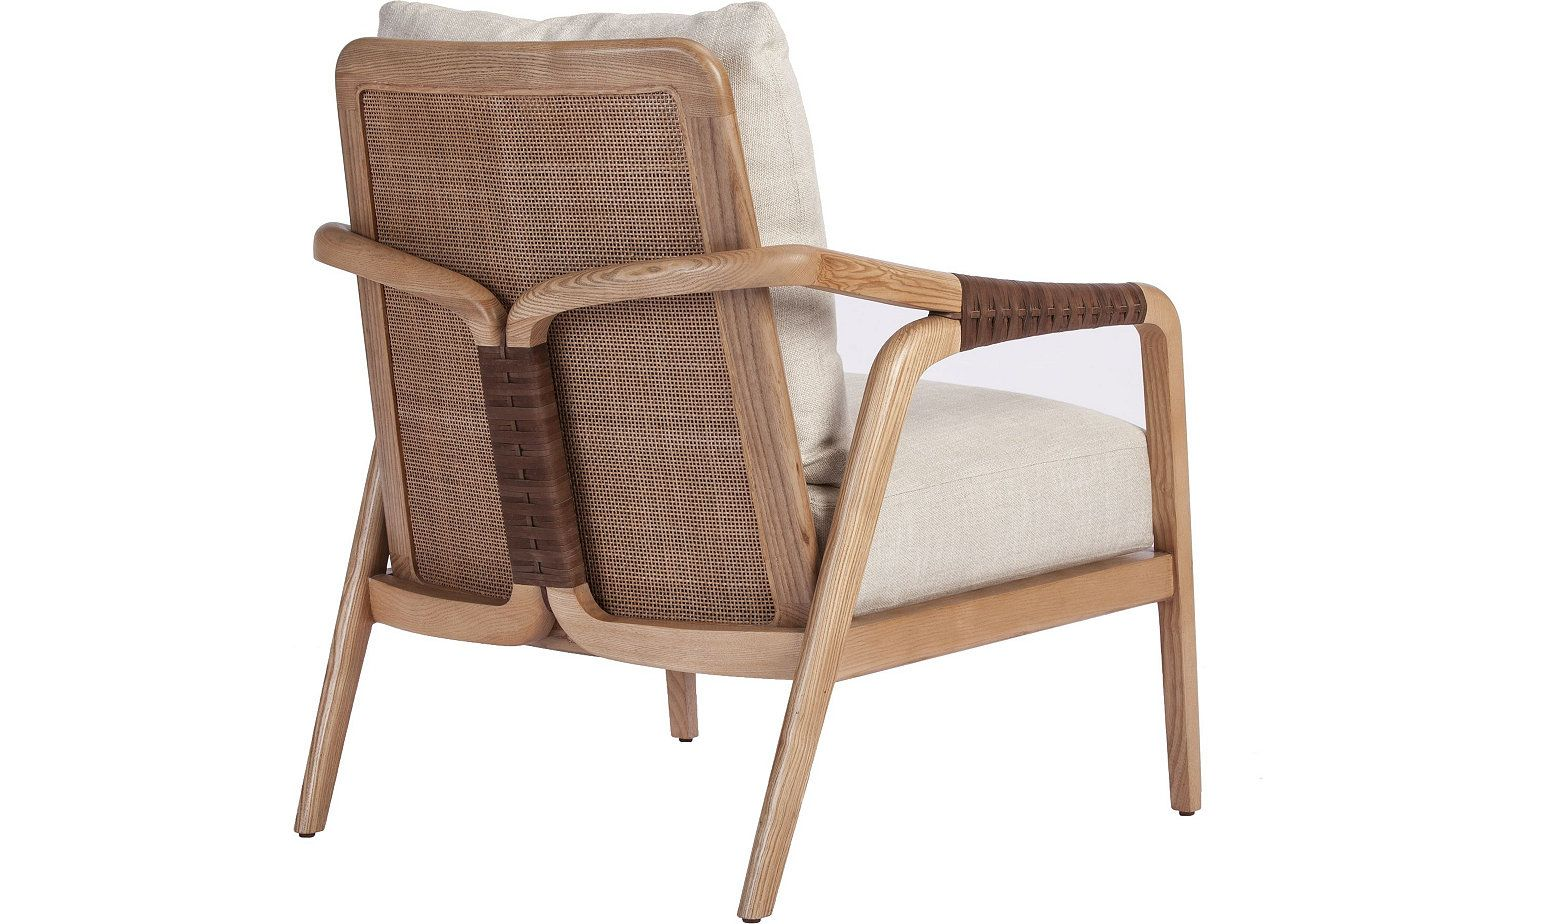 mcguire furniture company. Knot Lounge Chair By McGuire - A-102 Mcguire Furniture Company